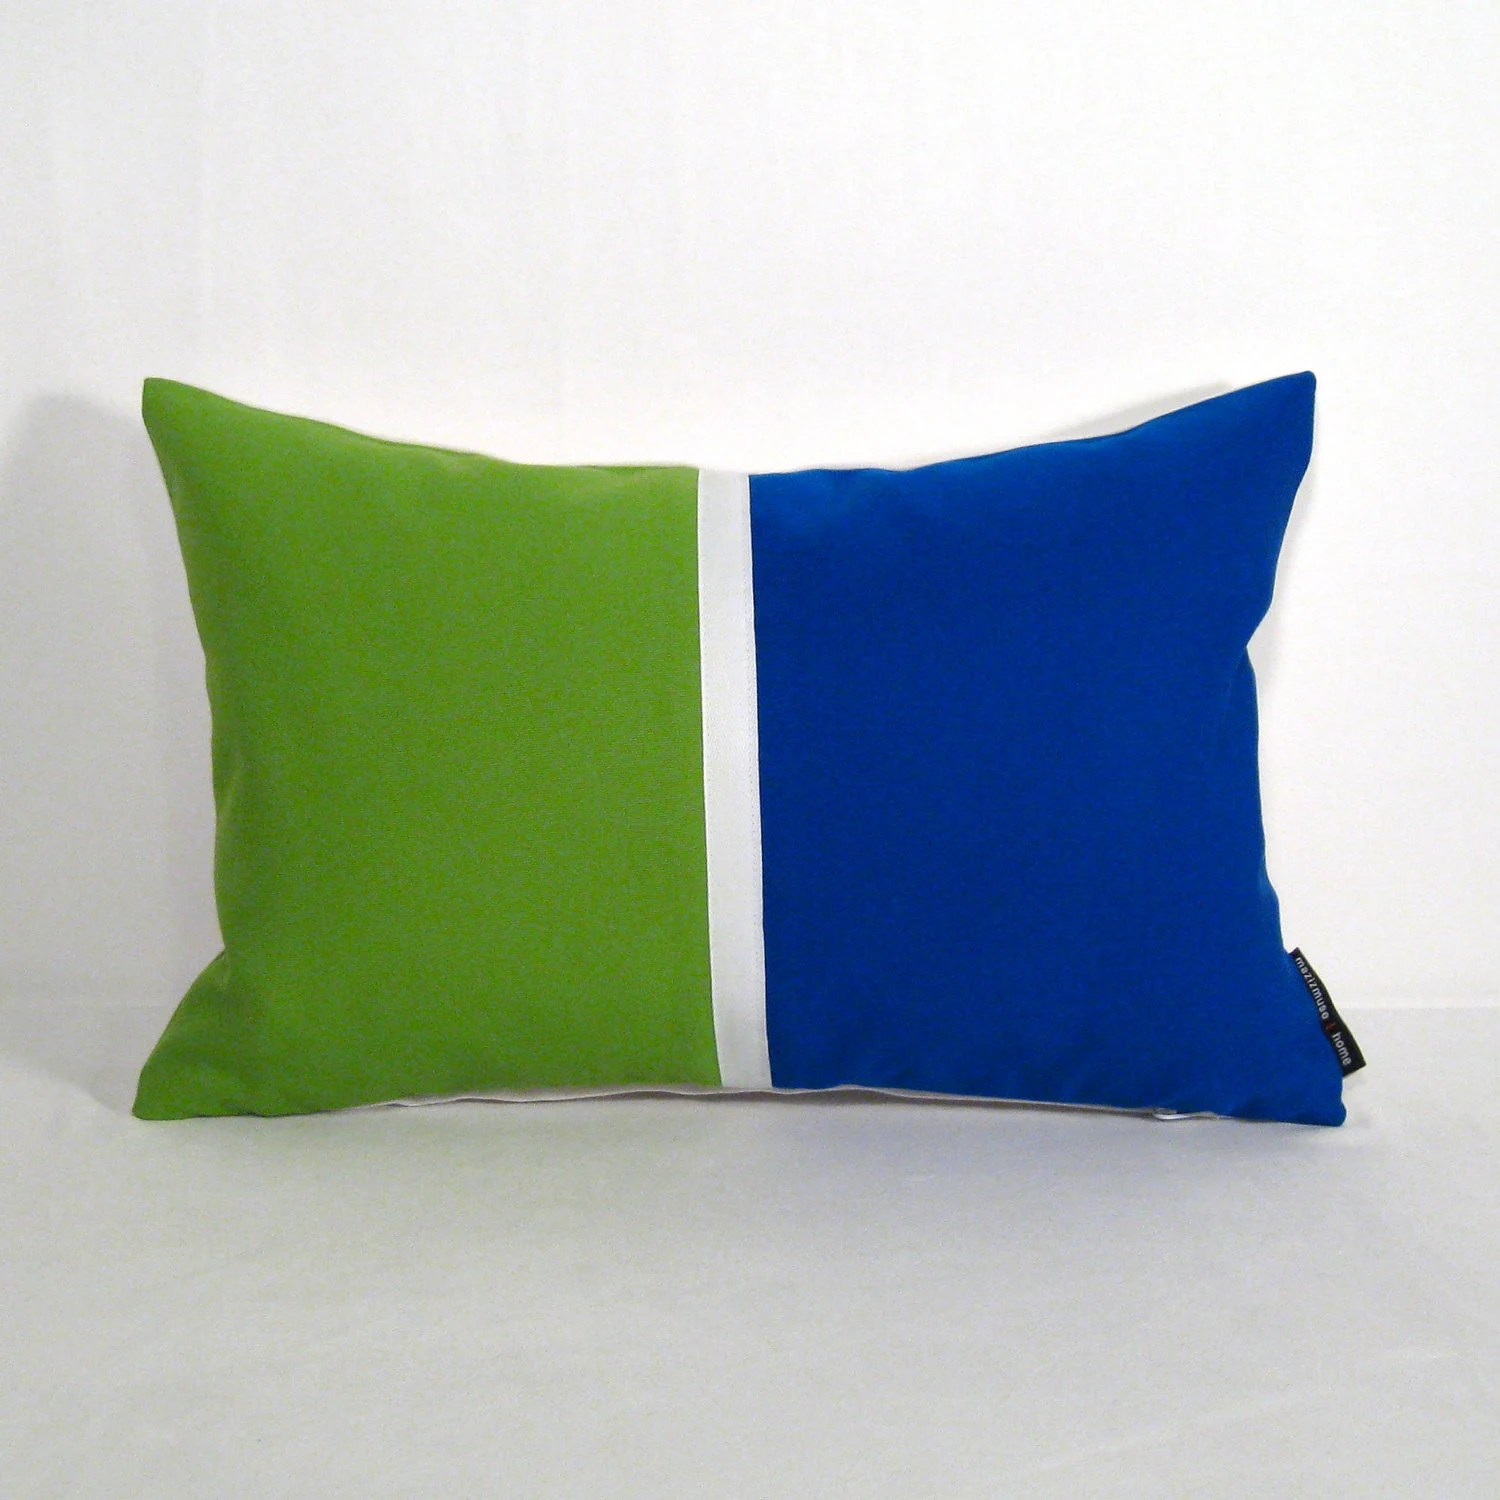 Color Block Pillow Cover - Decorative Outdoor Cushion - Modern Colorblock - Pop Art - Blue Green - Lime Cobalt - Sunbrella 12 X 18 inch - Mazizmuse